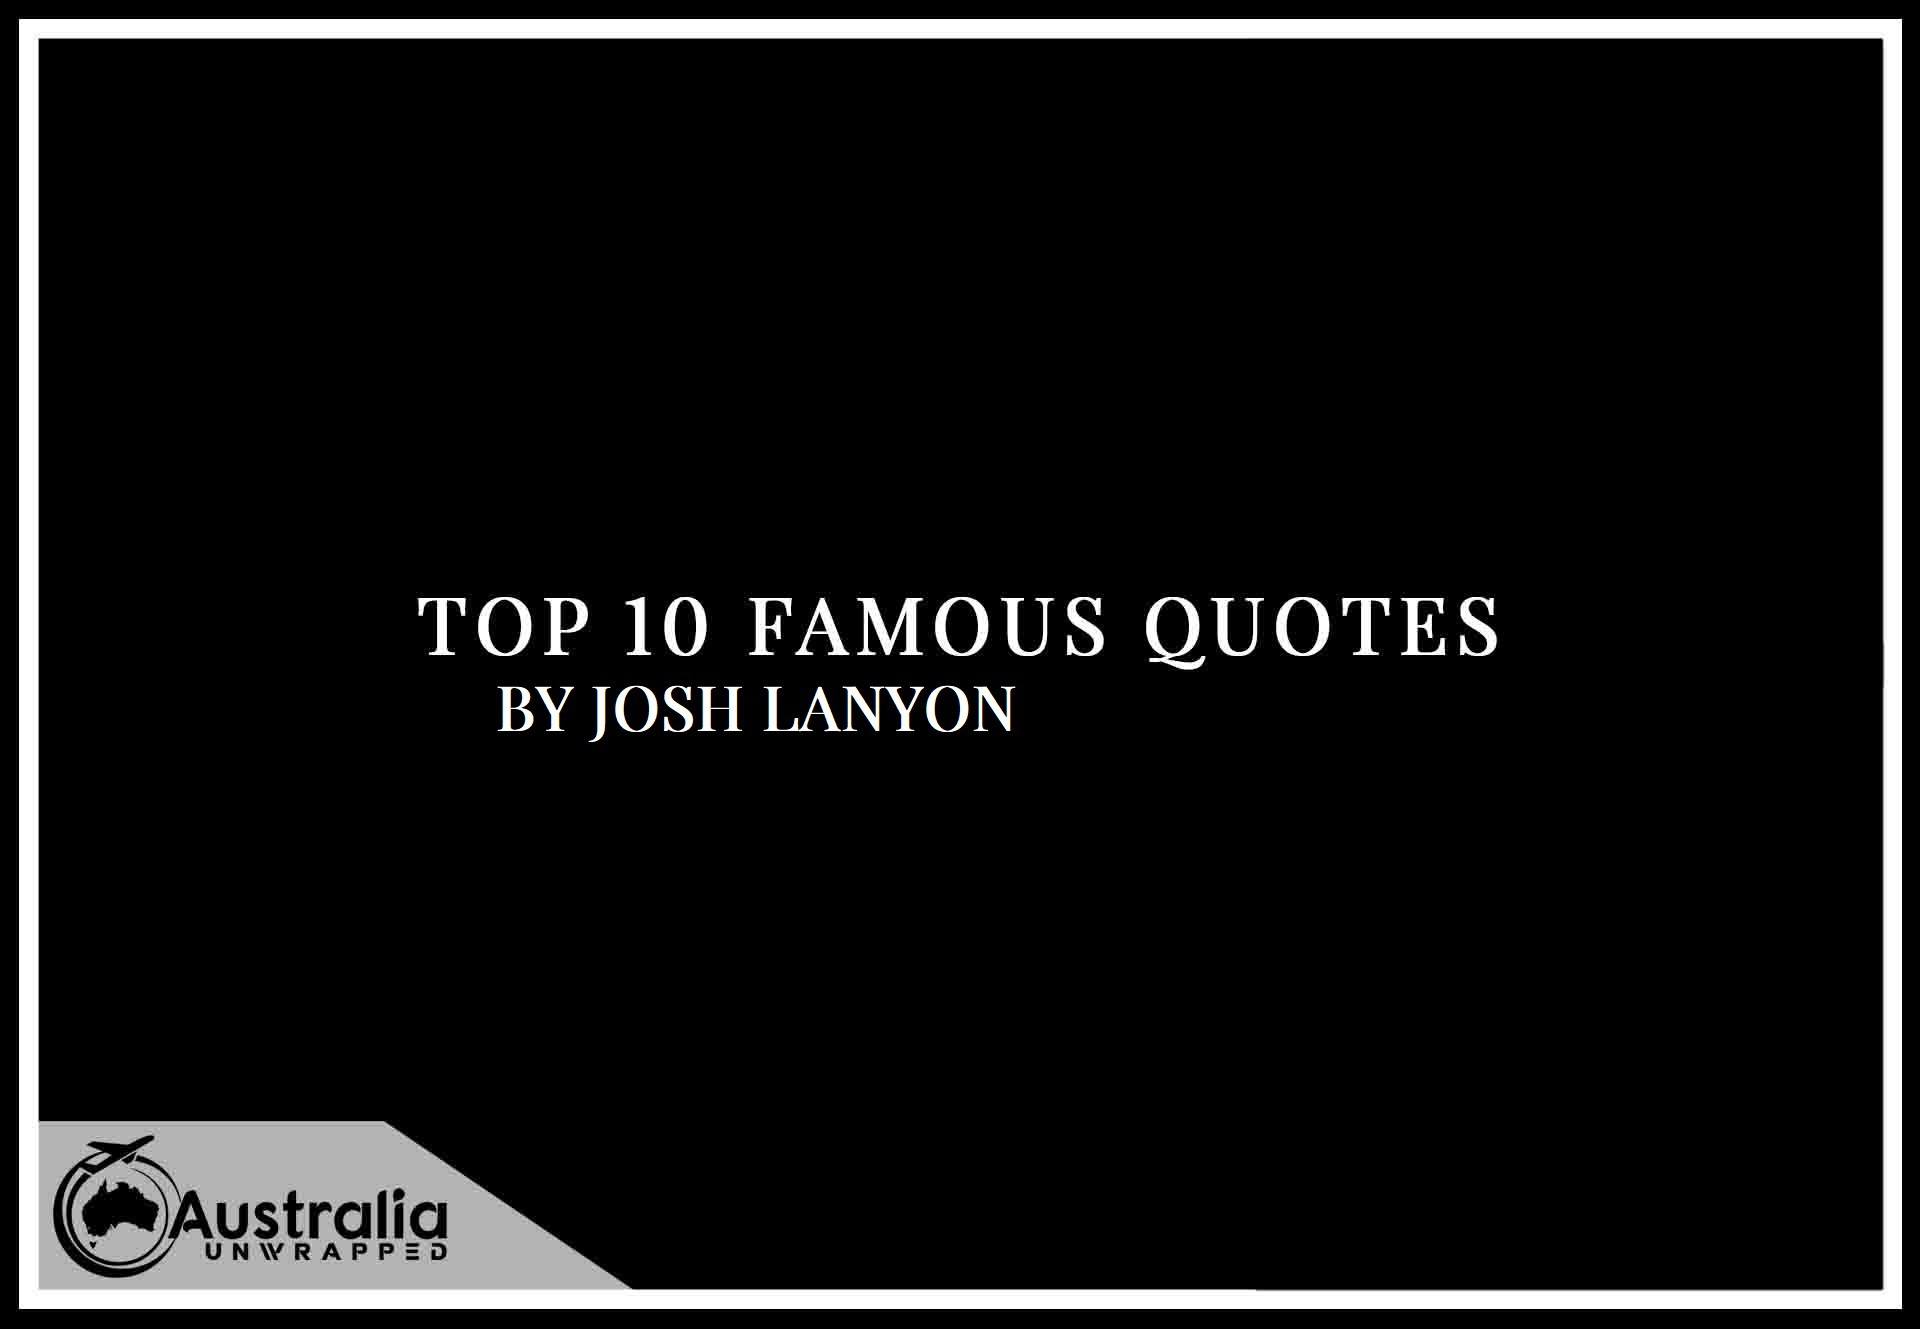 Top 10 Famous Quotes by Author Josh Lanyon